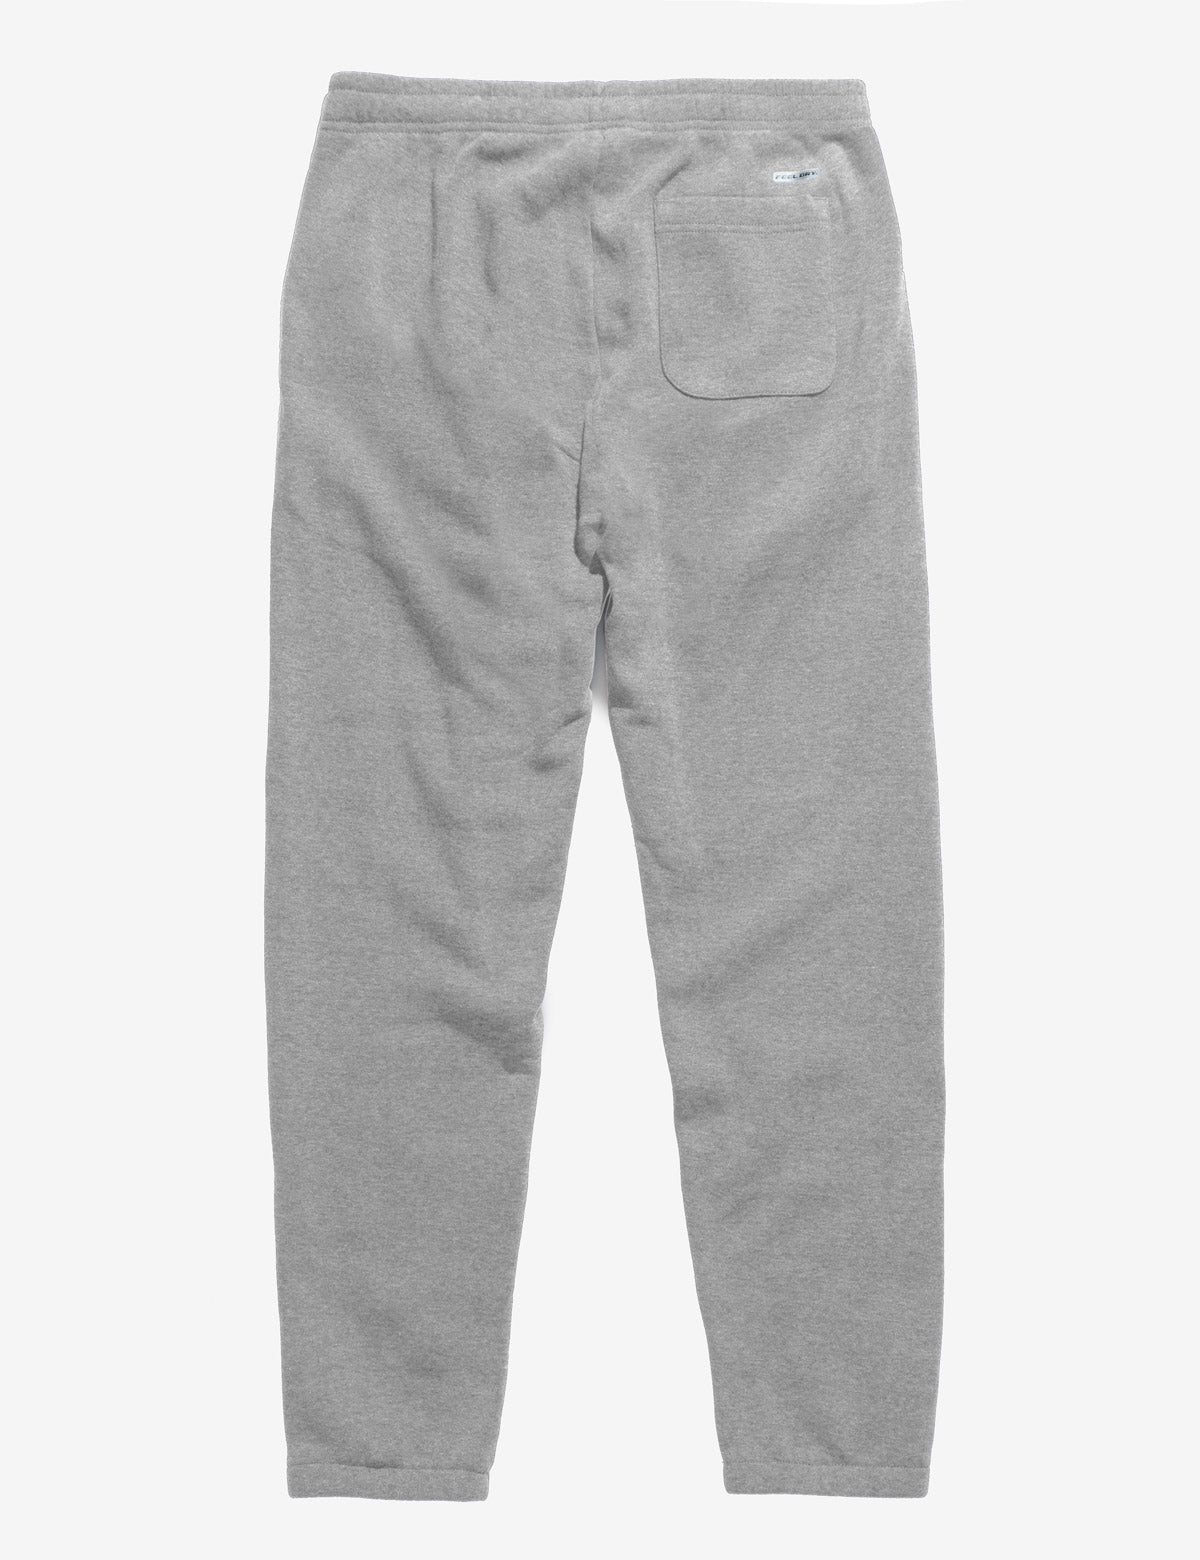 PATCH POCKET FLEECE PANTS - U.S. Polo Assn.